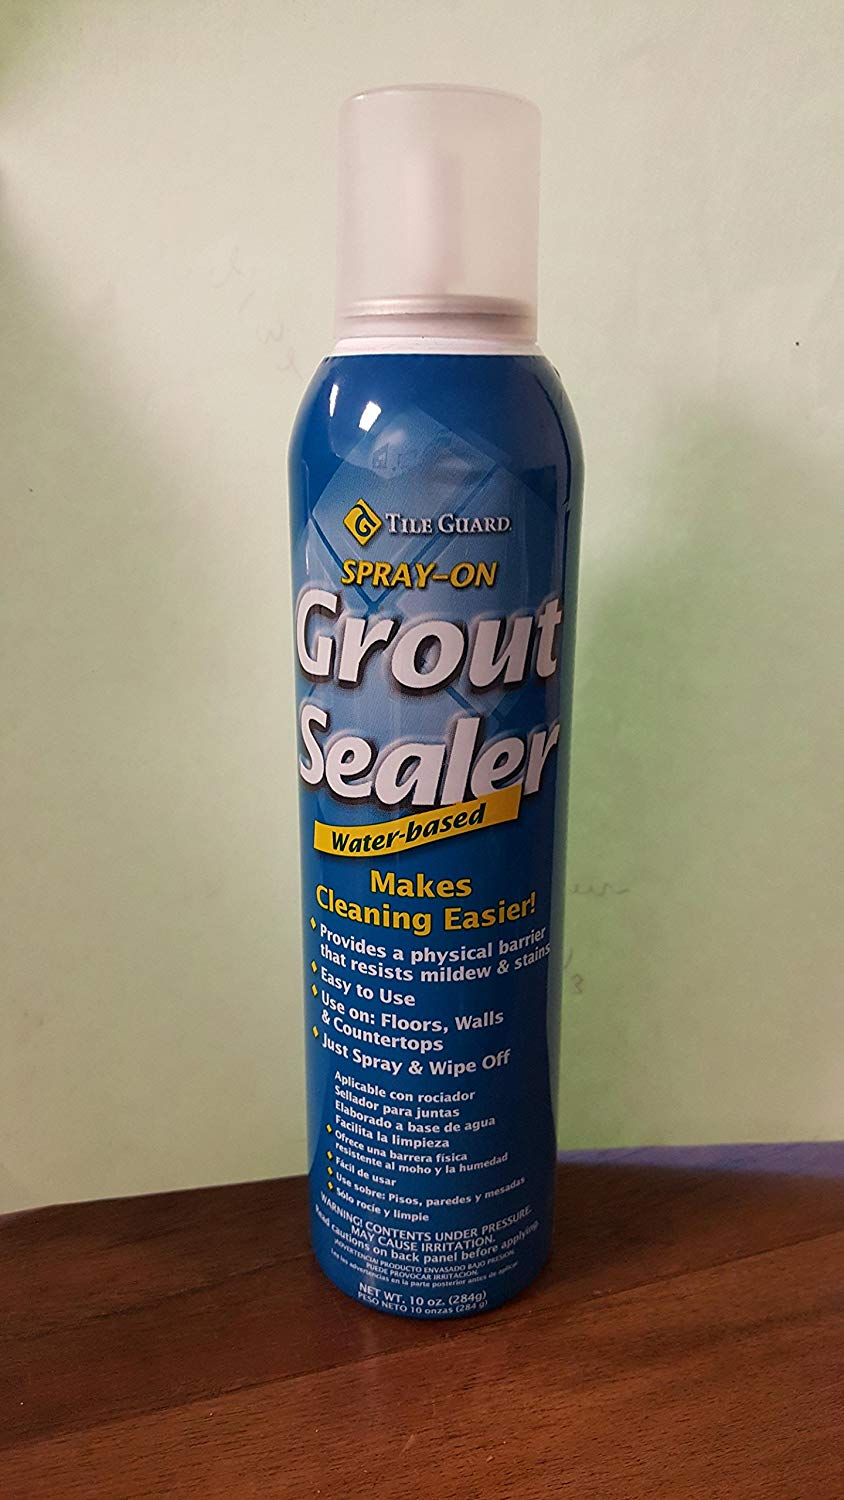 SPRAY ON GROUT SEALER WATER-BASED JUST SPRAY AND WIPE OFF